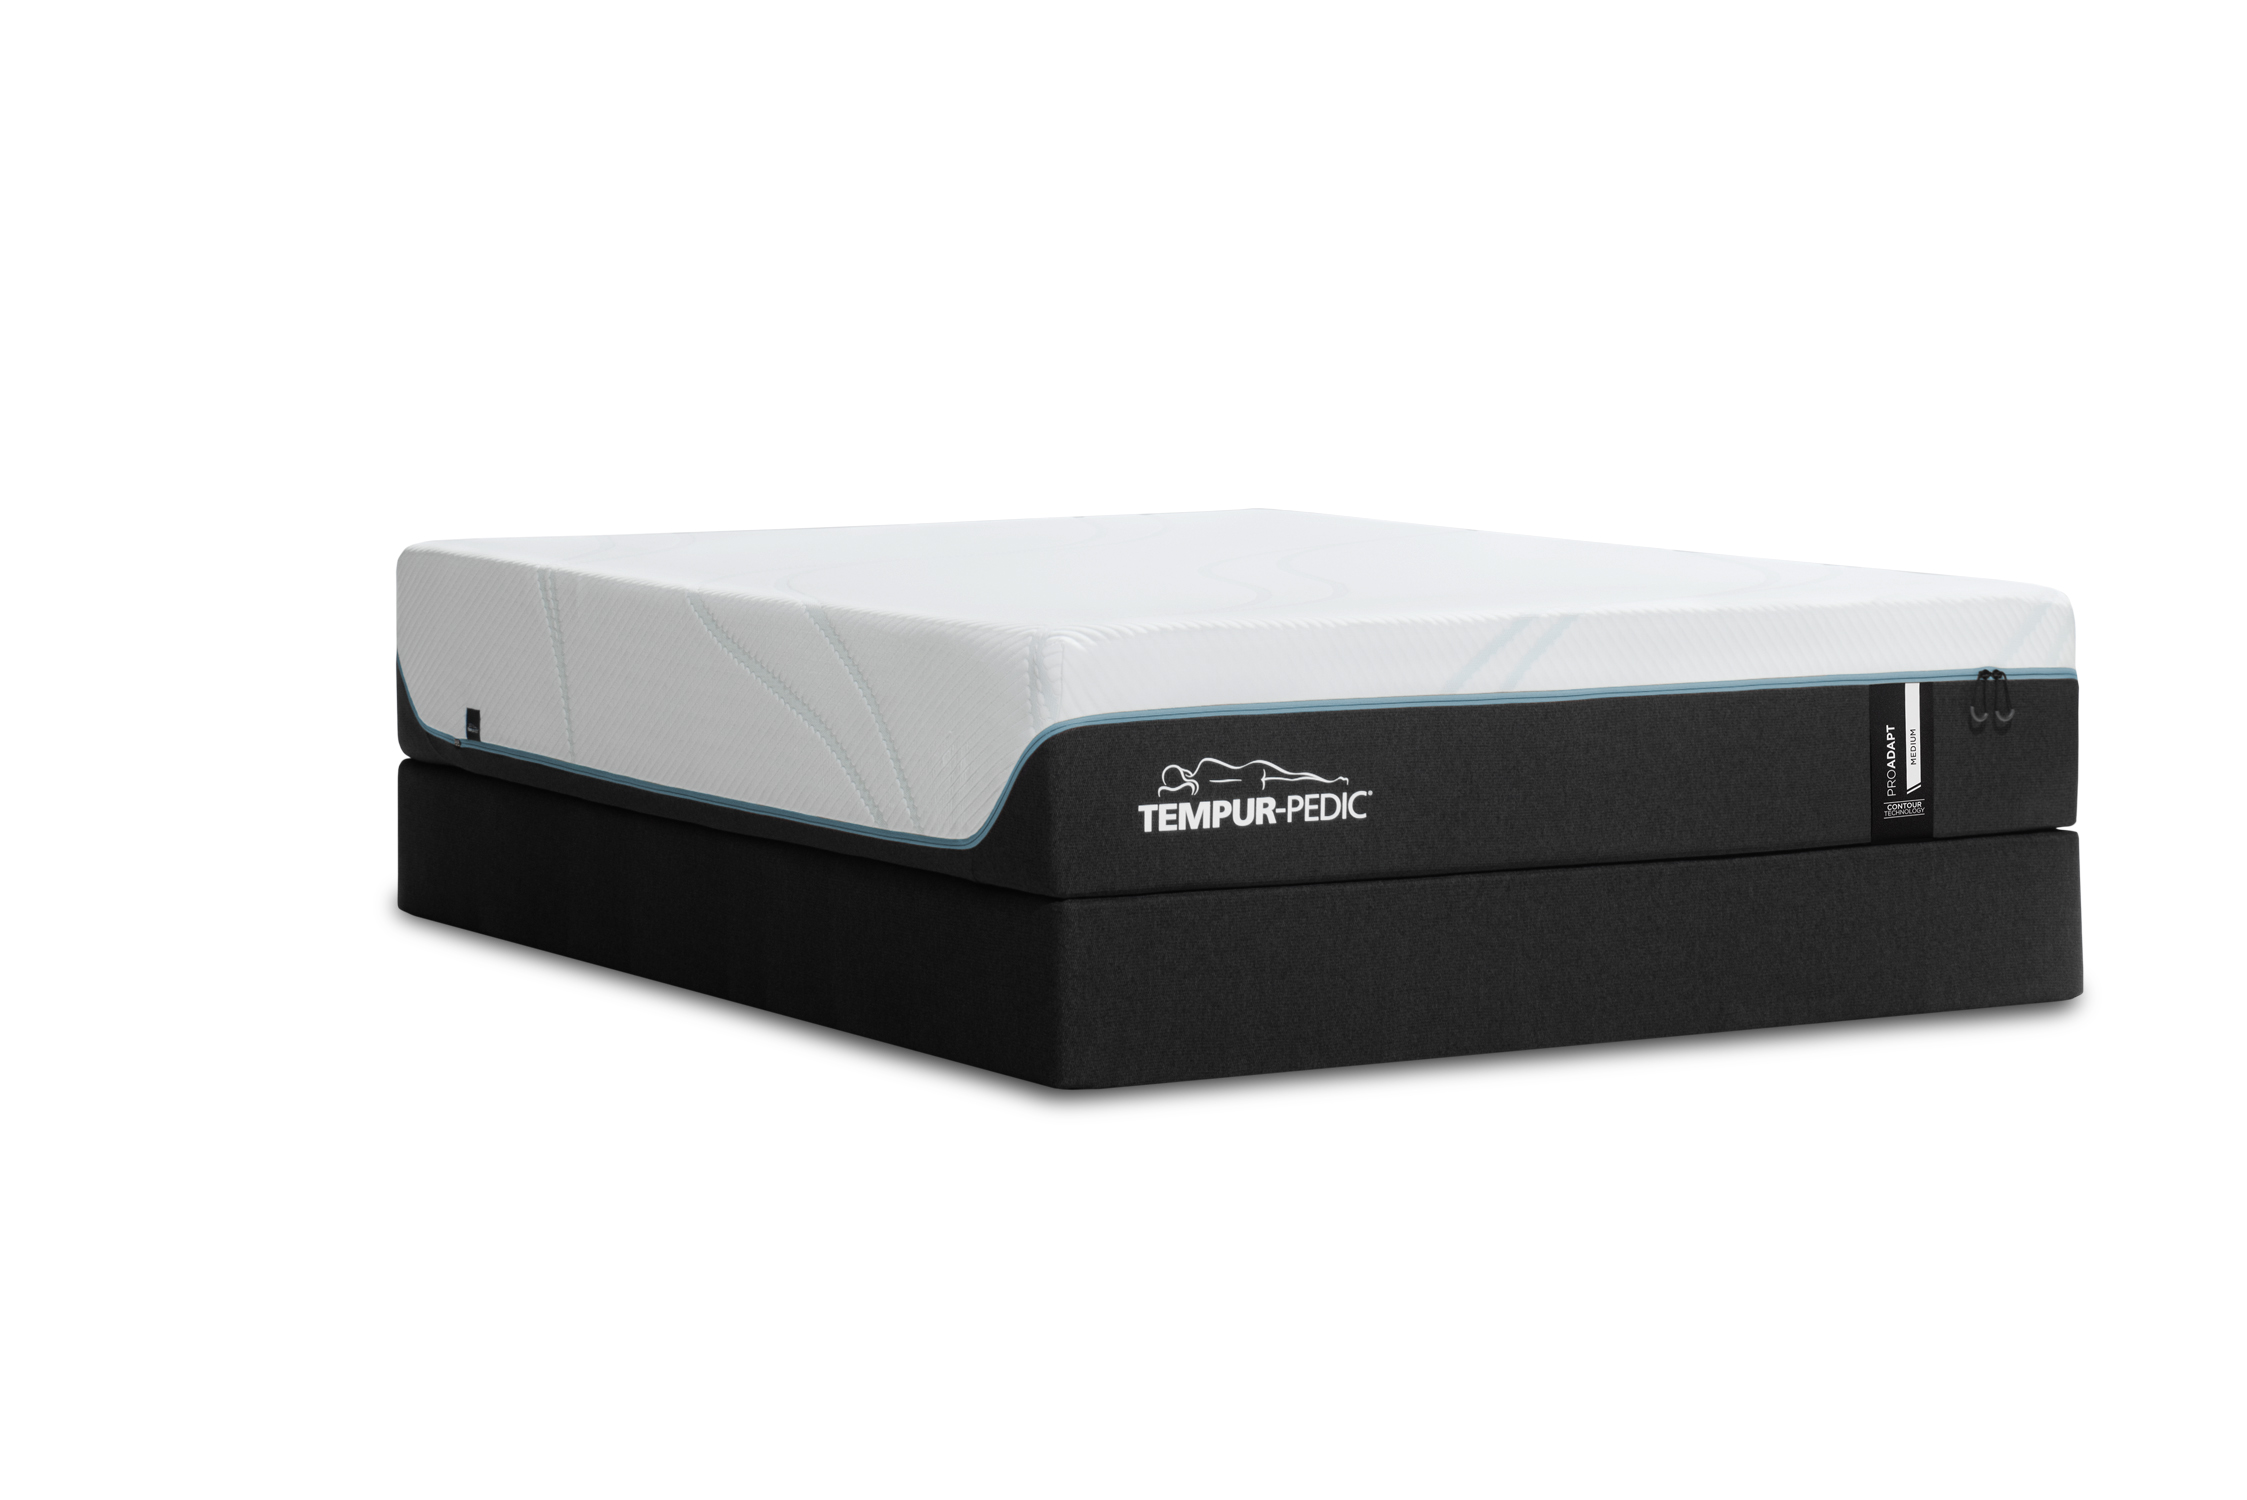 Tempur-Pedic Pro Adapt Mattress and Box Frame